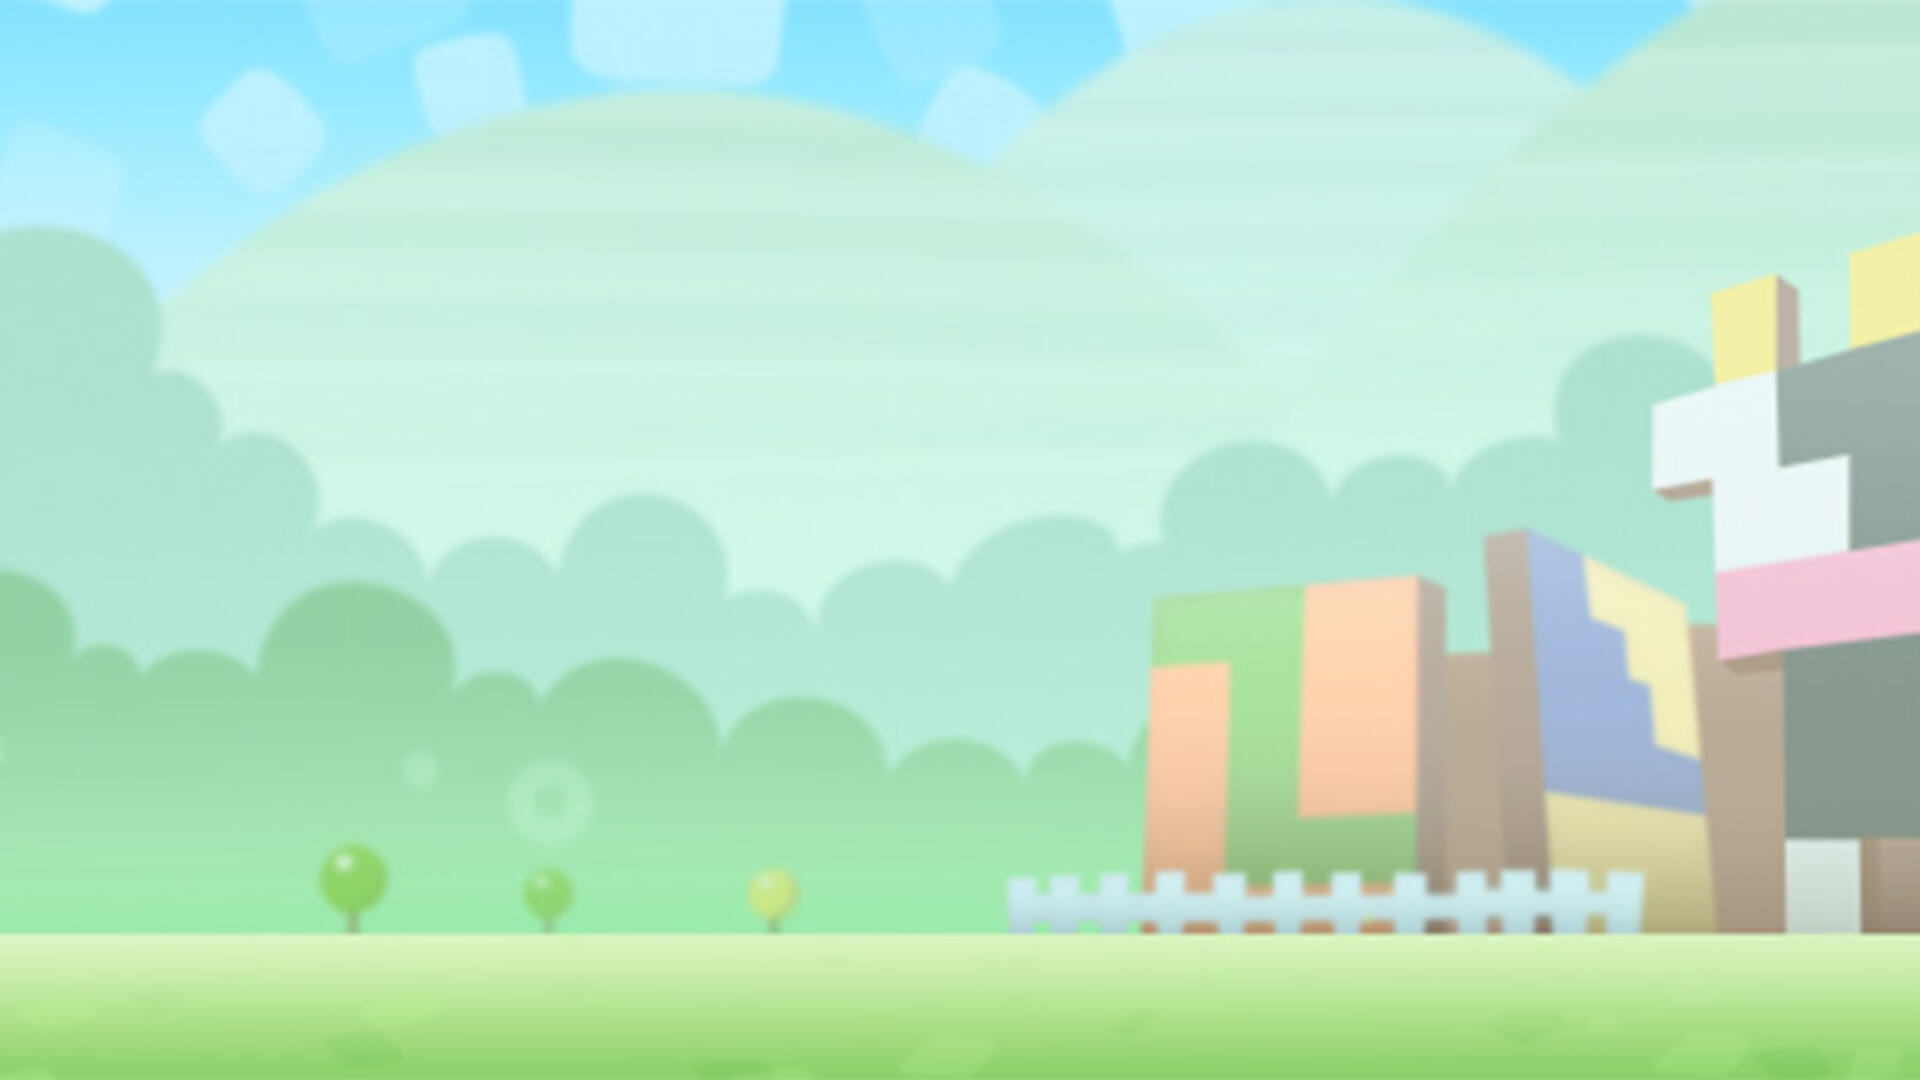 Pushmo World Wii U Review: Puzzles for the Spatially-Challenged